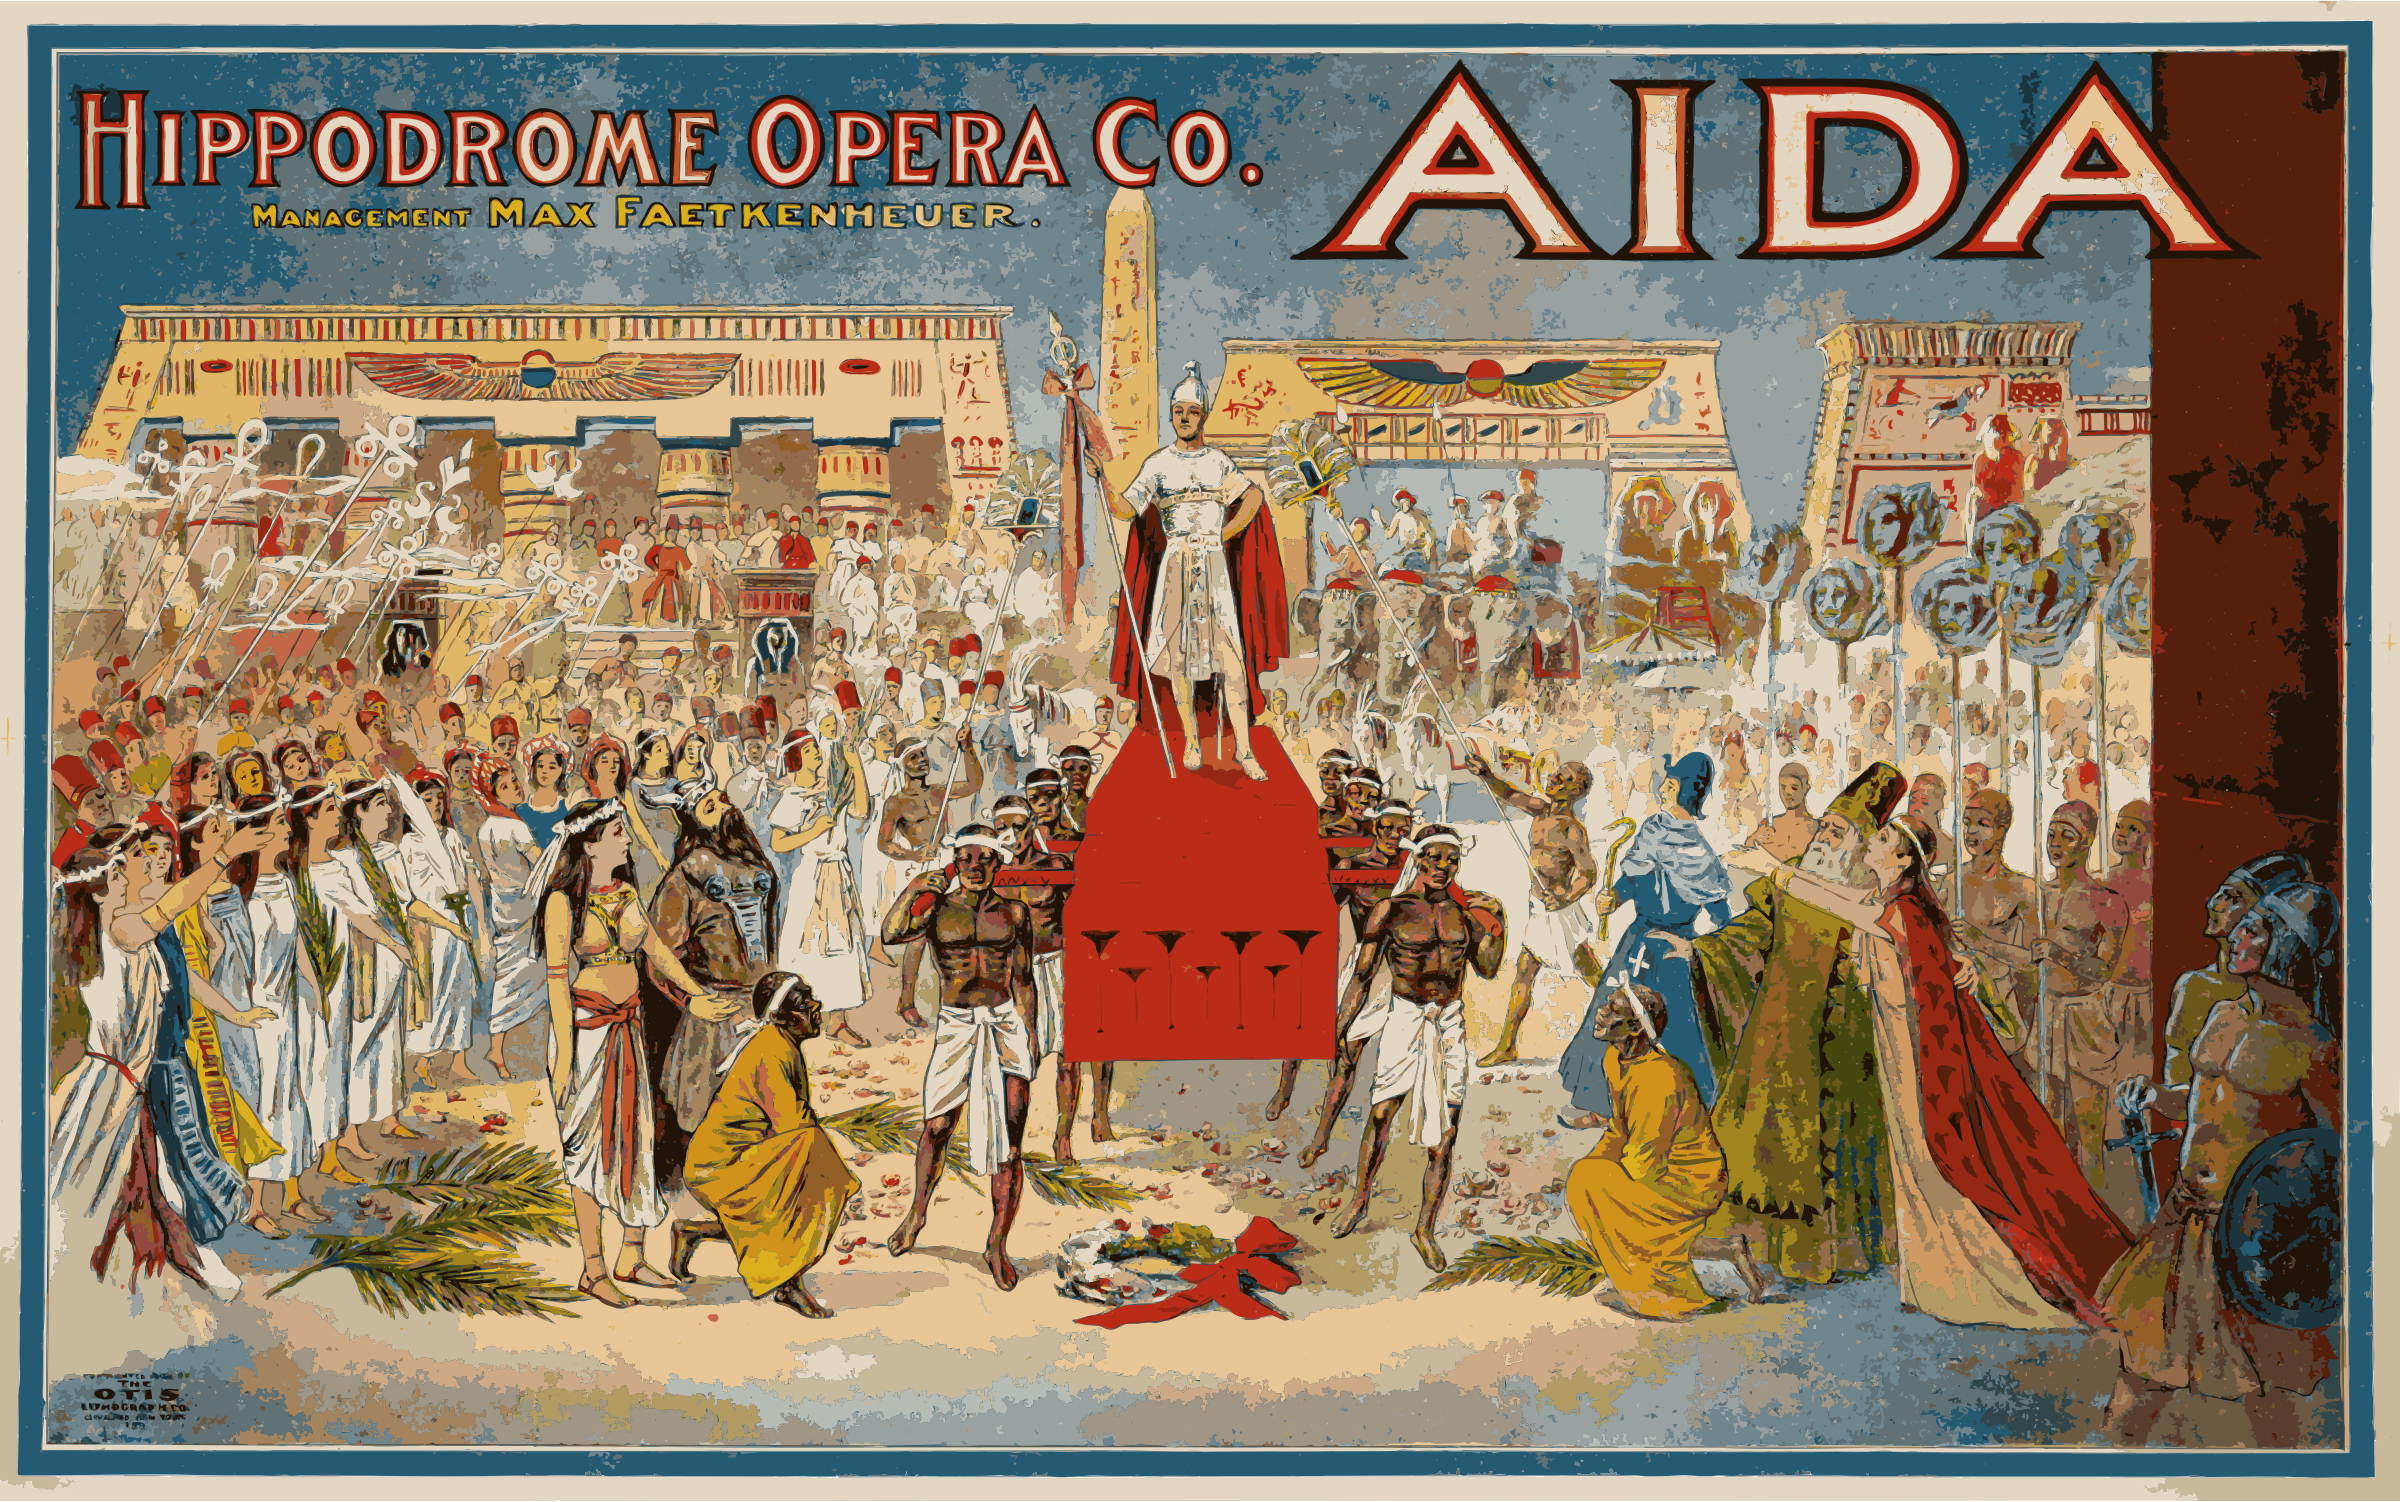 Aida poster colors fixed by 3wsmh6+89hirmxl0et8c